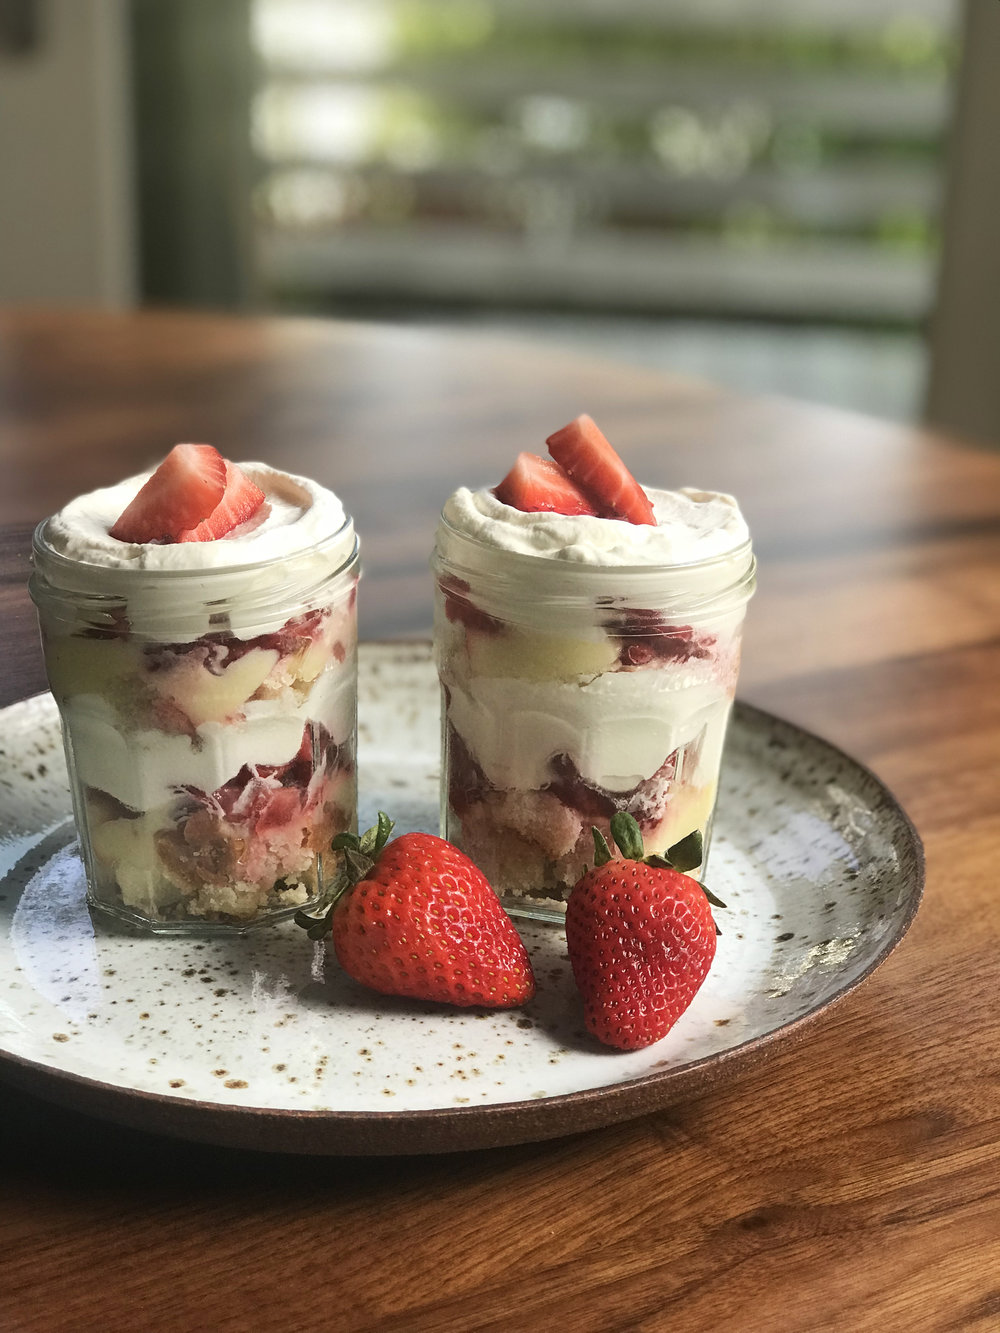 Strawberry_Lemon_Parfeit_Recipe_Summer_Parfeits_Best_Strawberry_Dessert_Easy_Strawberry_Lemon_Dessert_Layered_Dessert_Dessert_Fiend.JPG